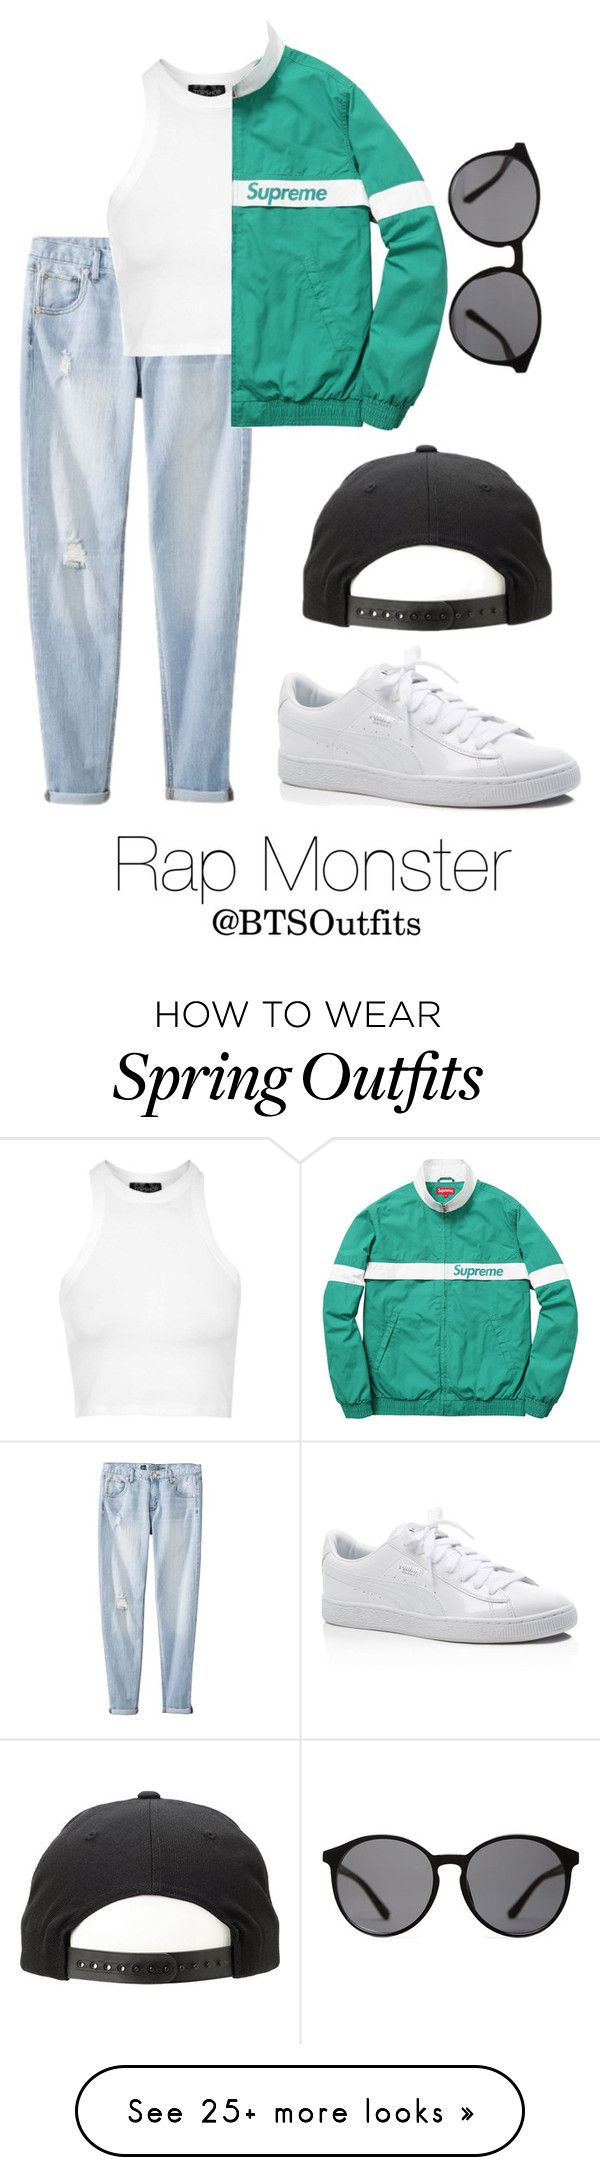 """""""Spring Outfit Inspired by Rap Monster"""" by btsoutfits on Polyvore featuring Mossimo, Topshop, Linda Farrow, Puma, women's clothing, women, female, woman, misses and juniors"""